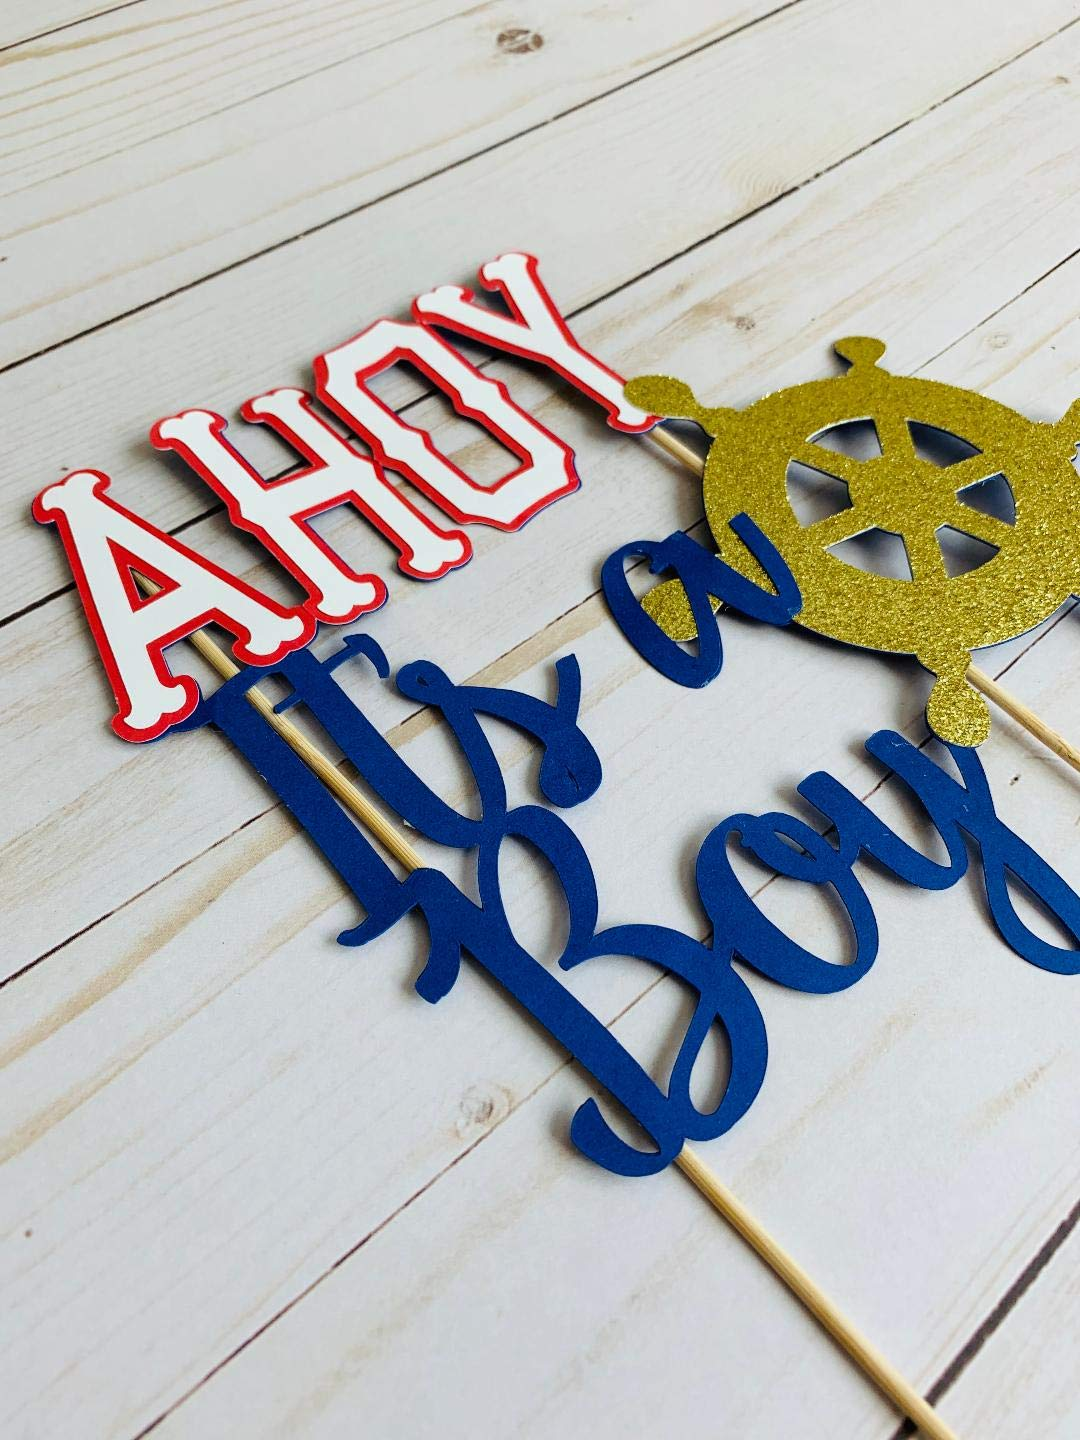 AHOY ITS A BOY CAKE TOPPER WITH BOAT WHEEL